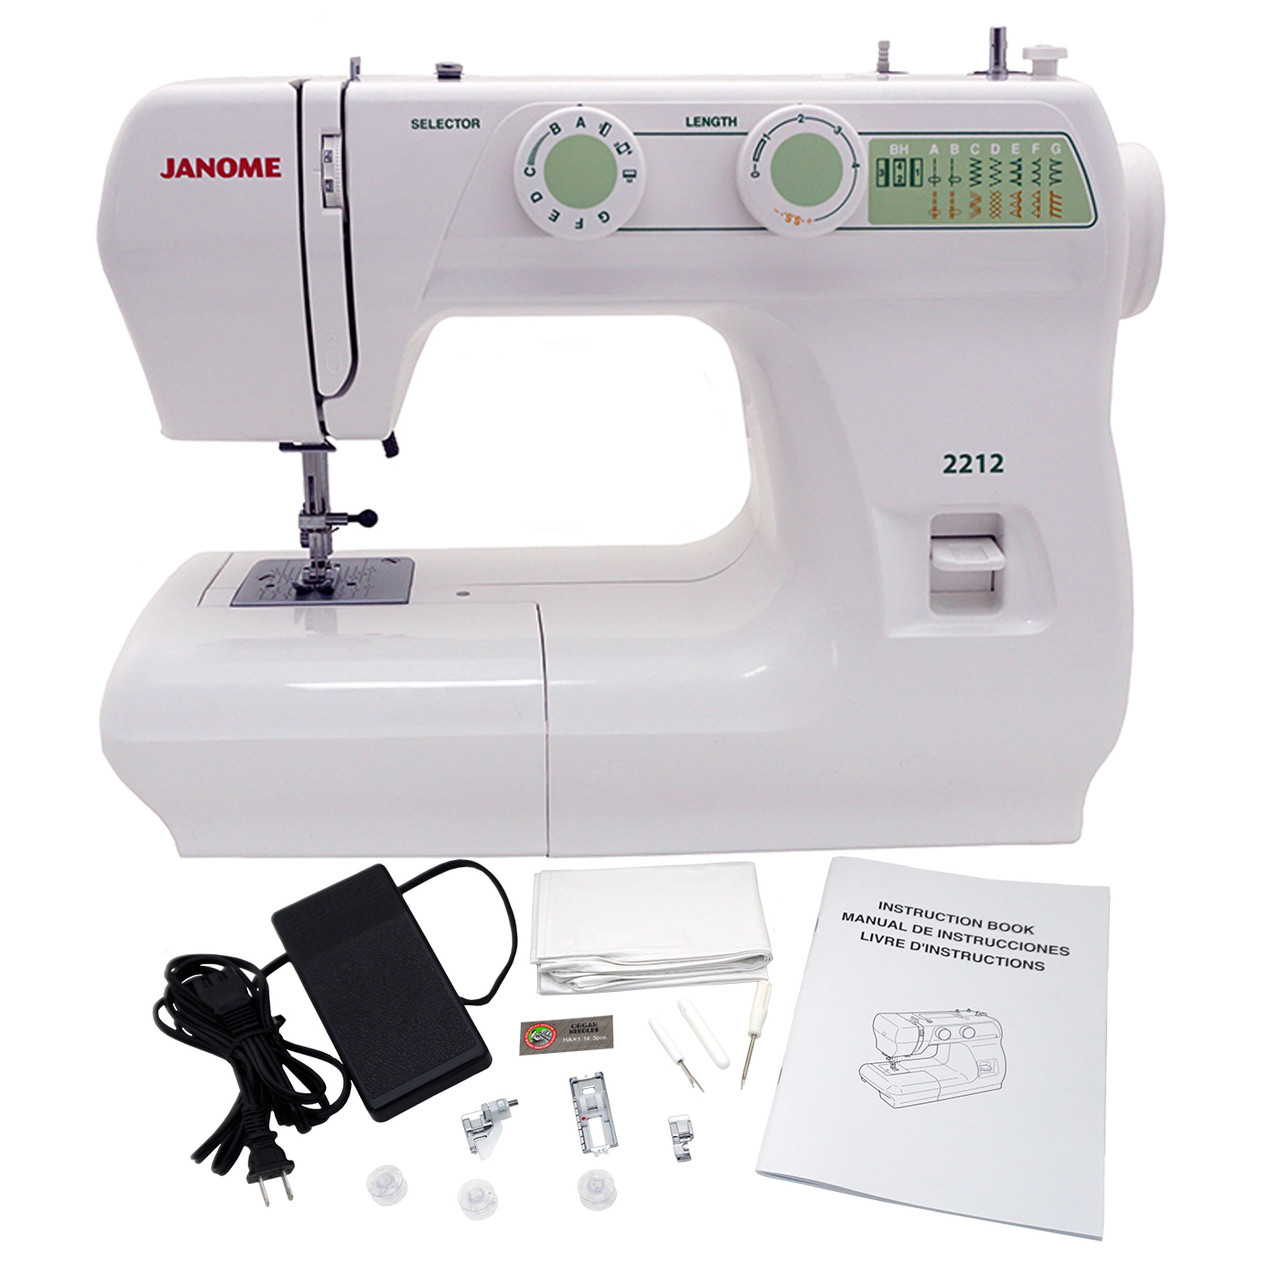 ... Janome 2212 Sewing Machine Includes Exclusive Bonus Bundle ...